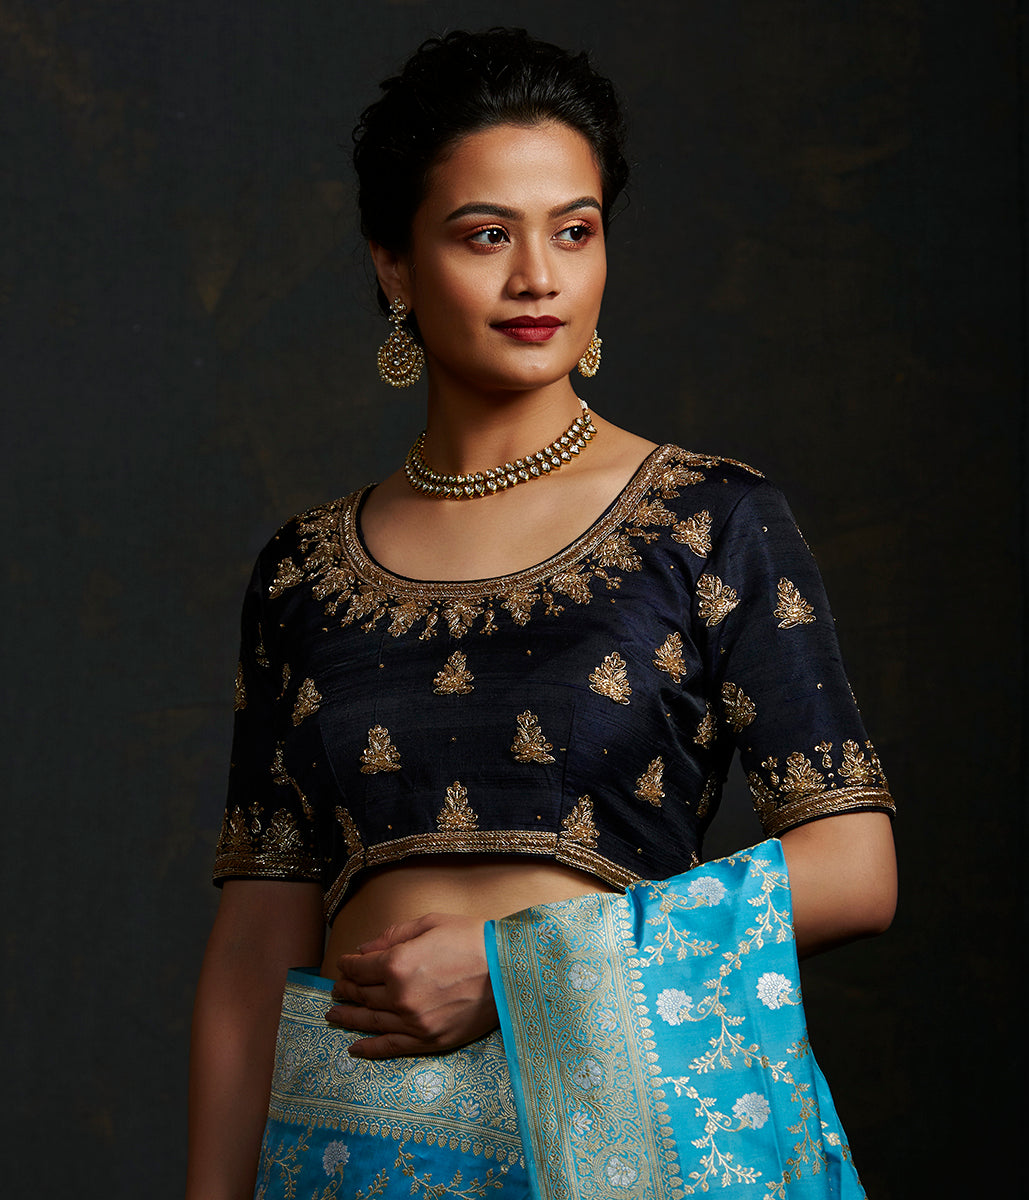 Black Raw Silk Blouse with Zardozi Embroidery